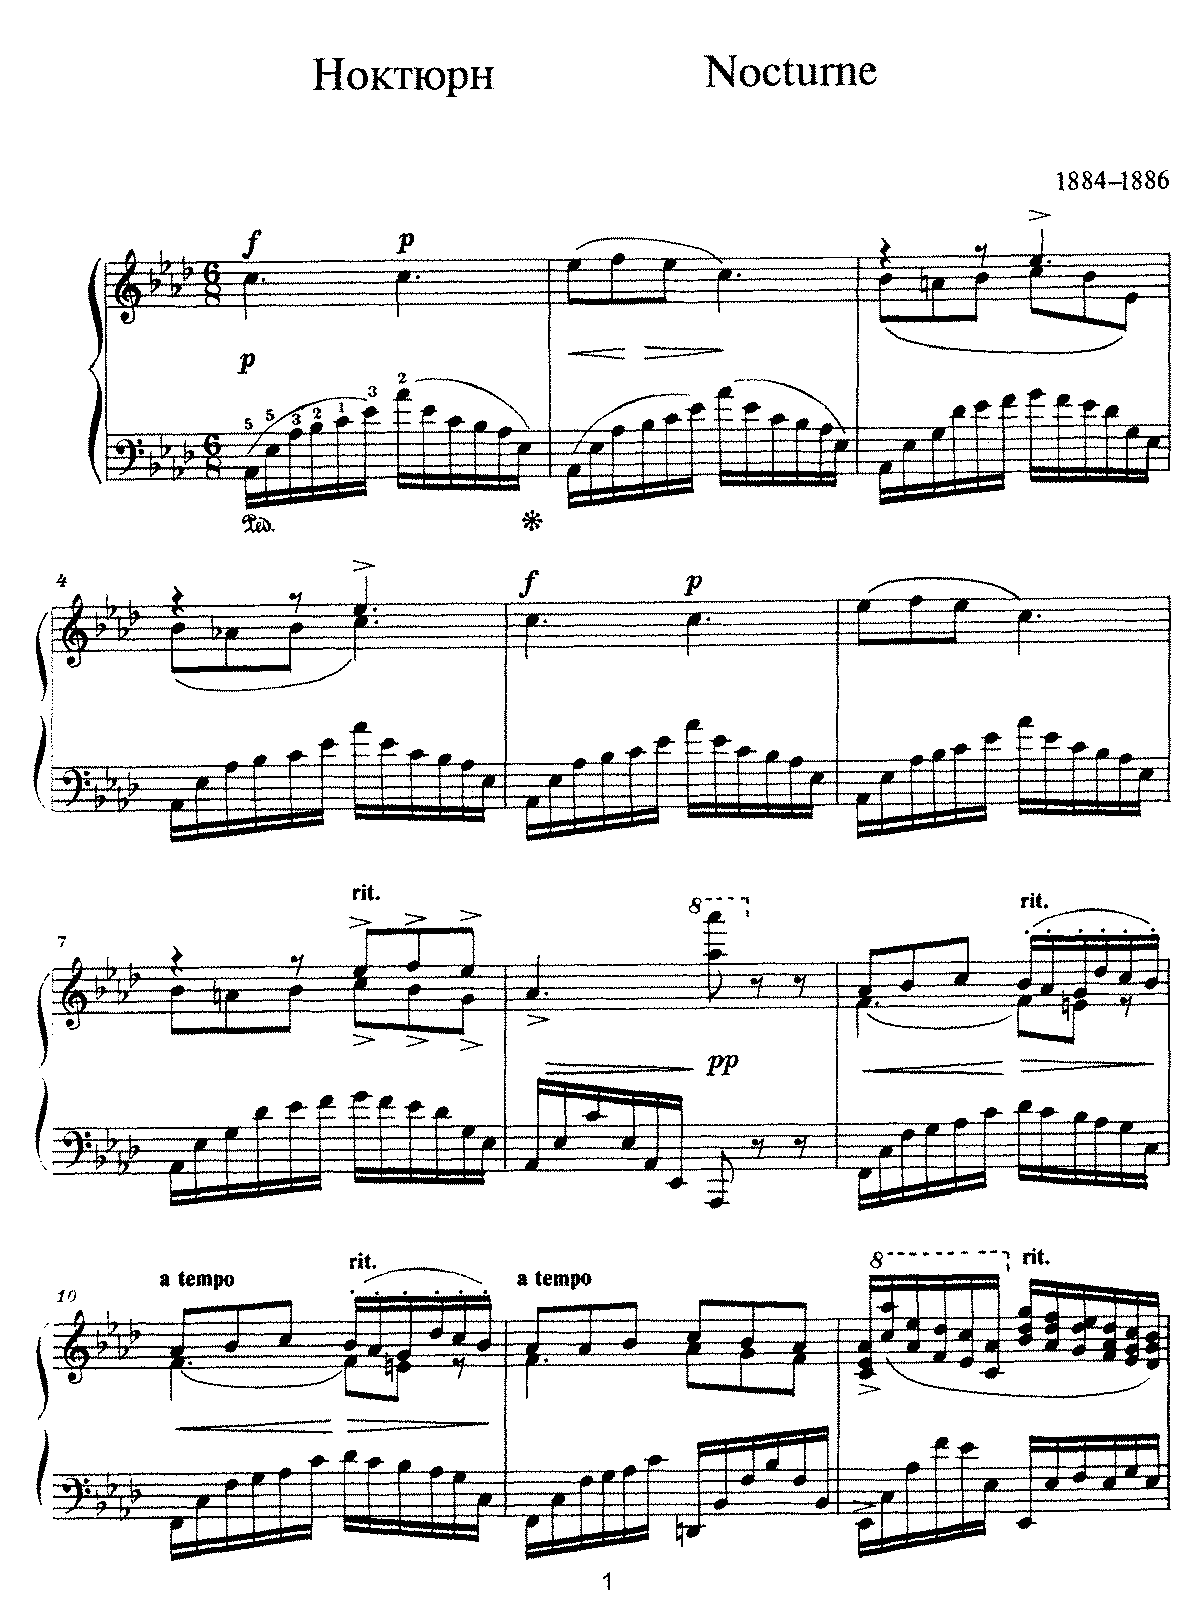 Scriabin - Op.misc - Nocturne in Ab Major (1884-86).pdf